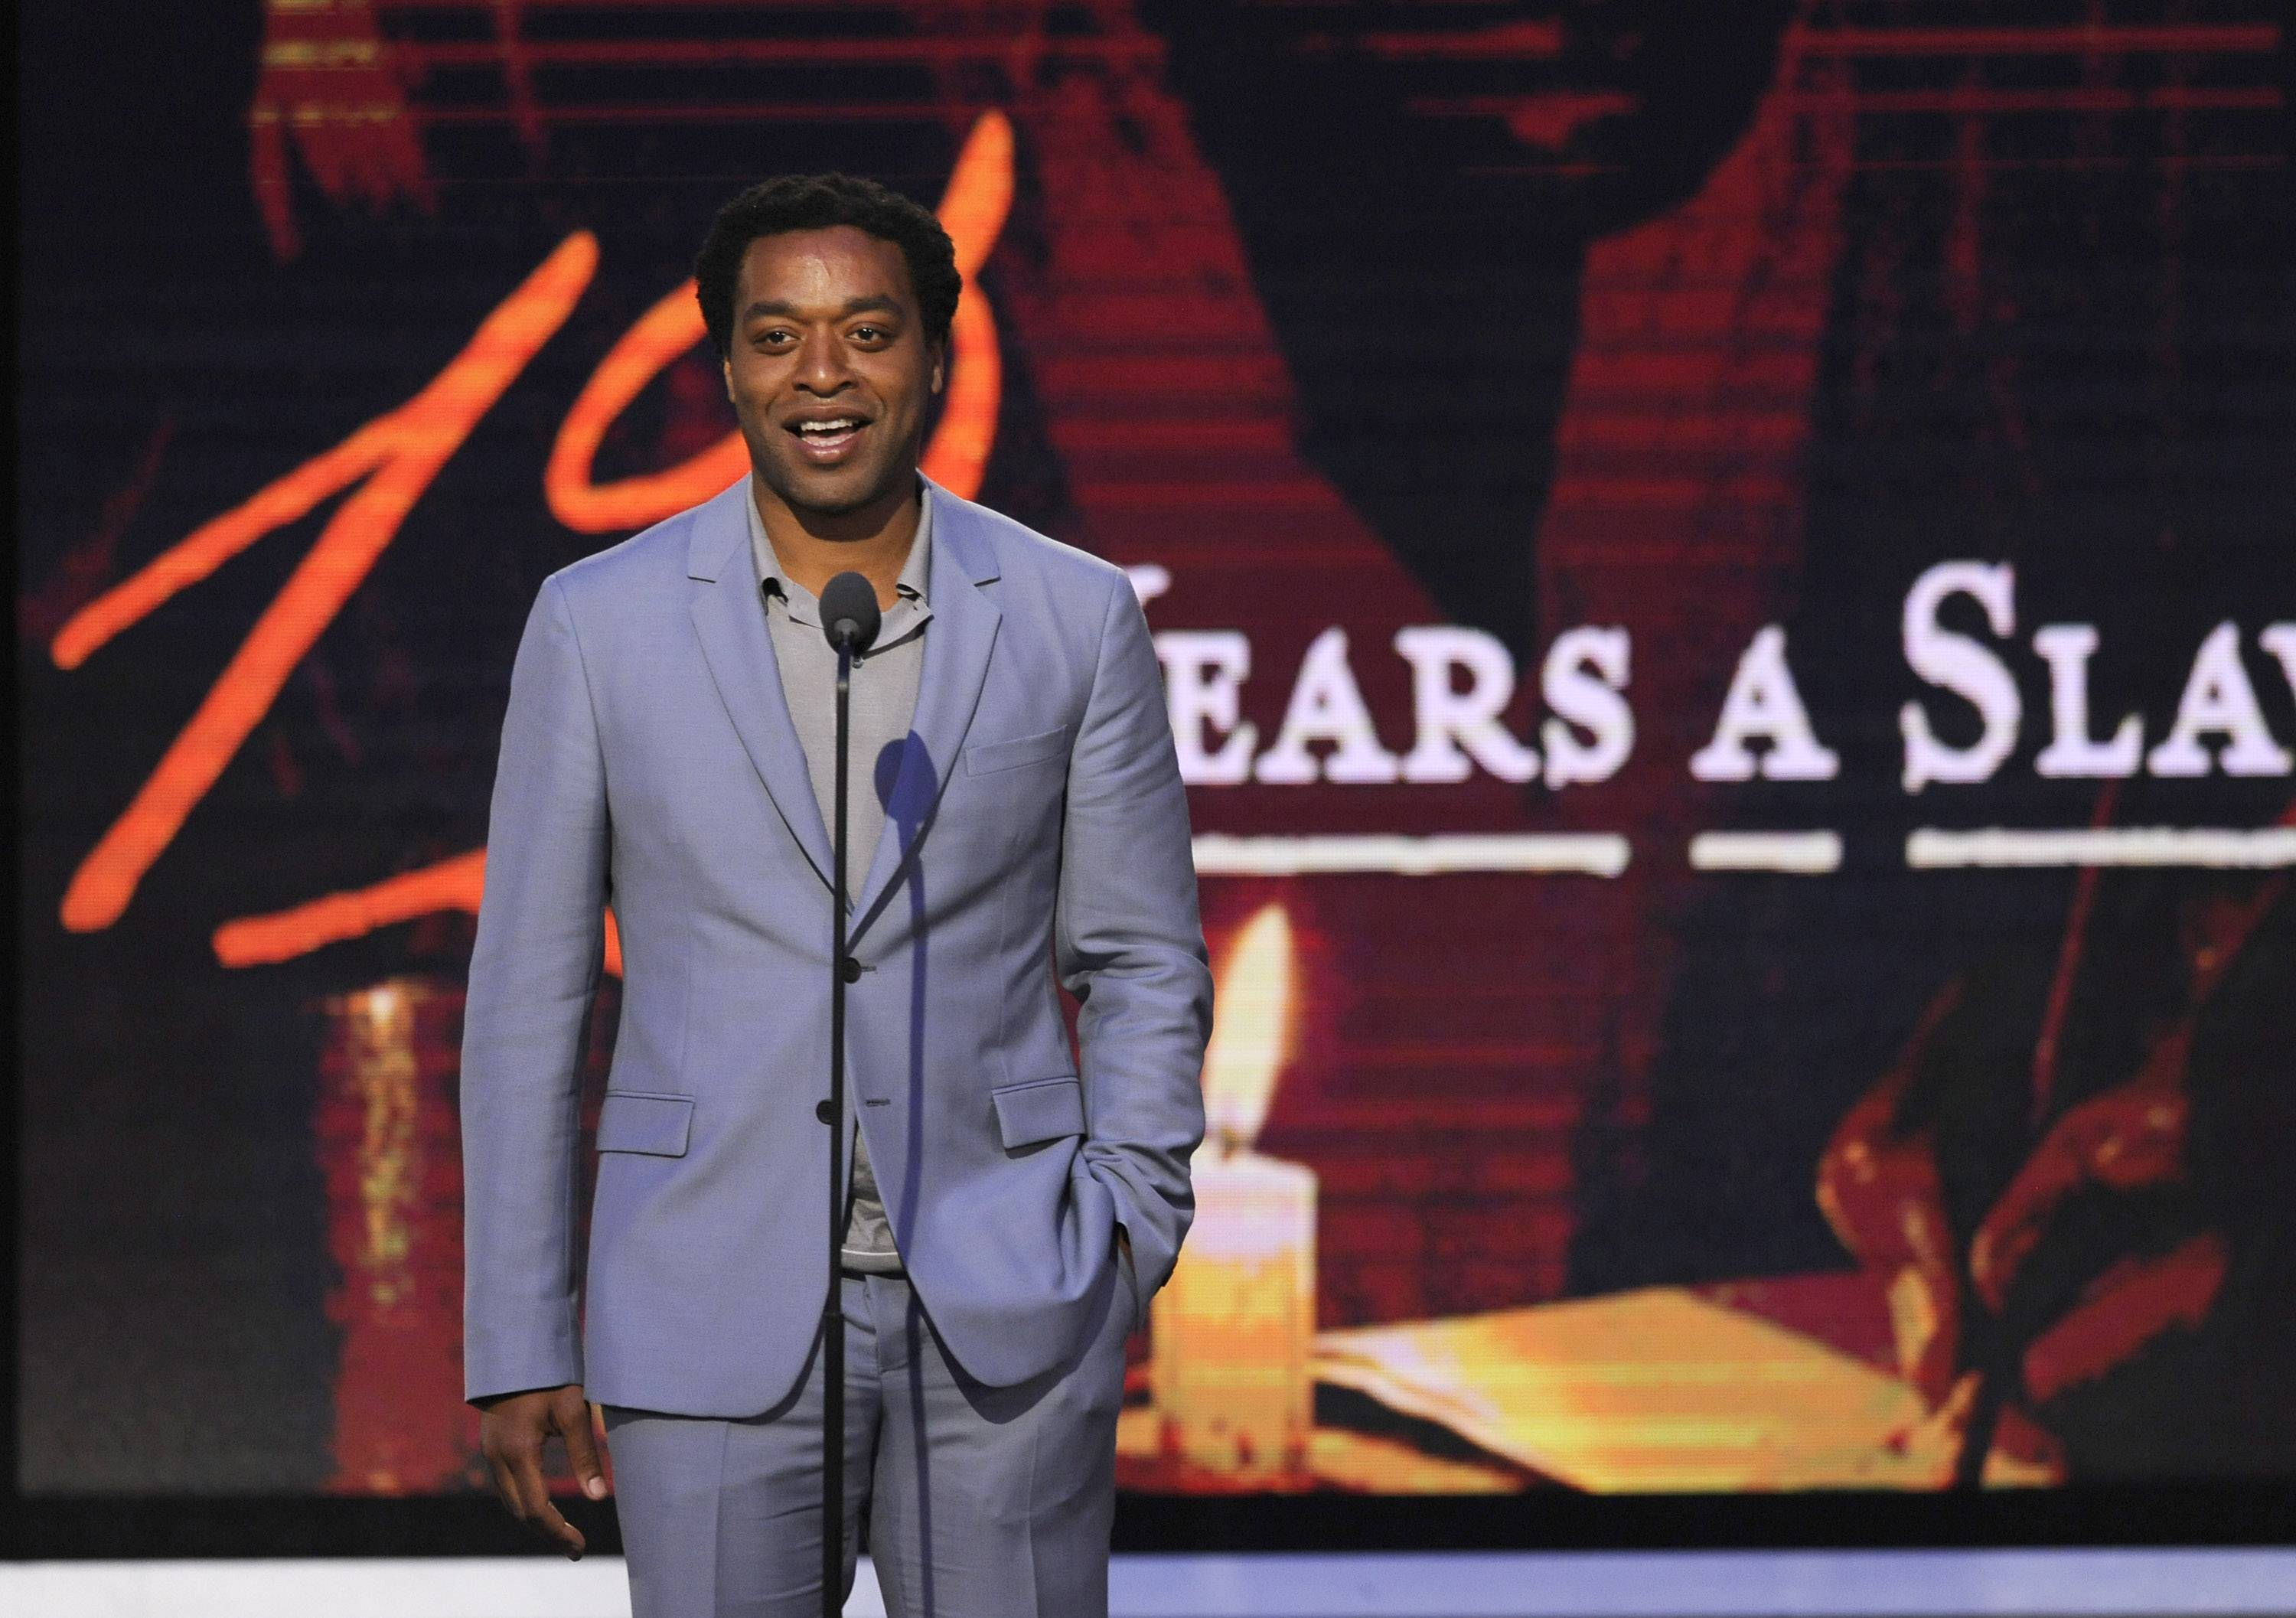 Chiwetel Ejiofor speaks on stage at the 2014 Film Independent Spirit Awards, on Saturday in Santa Monica, Calif.